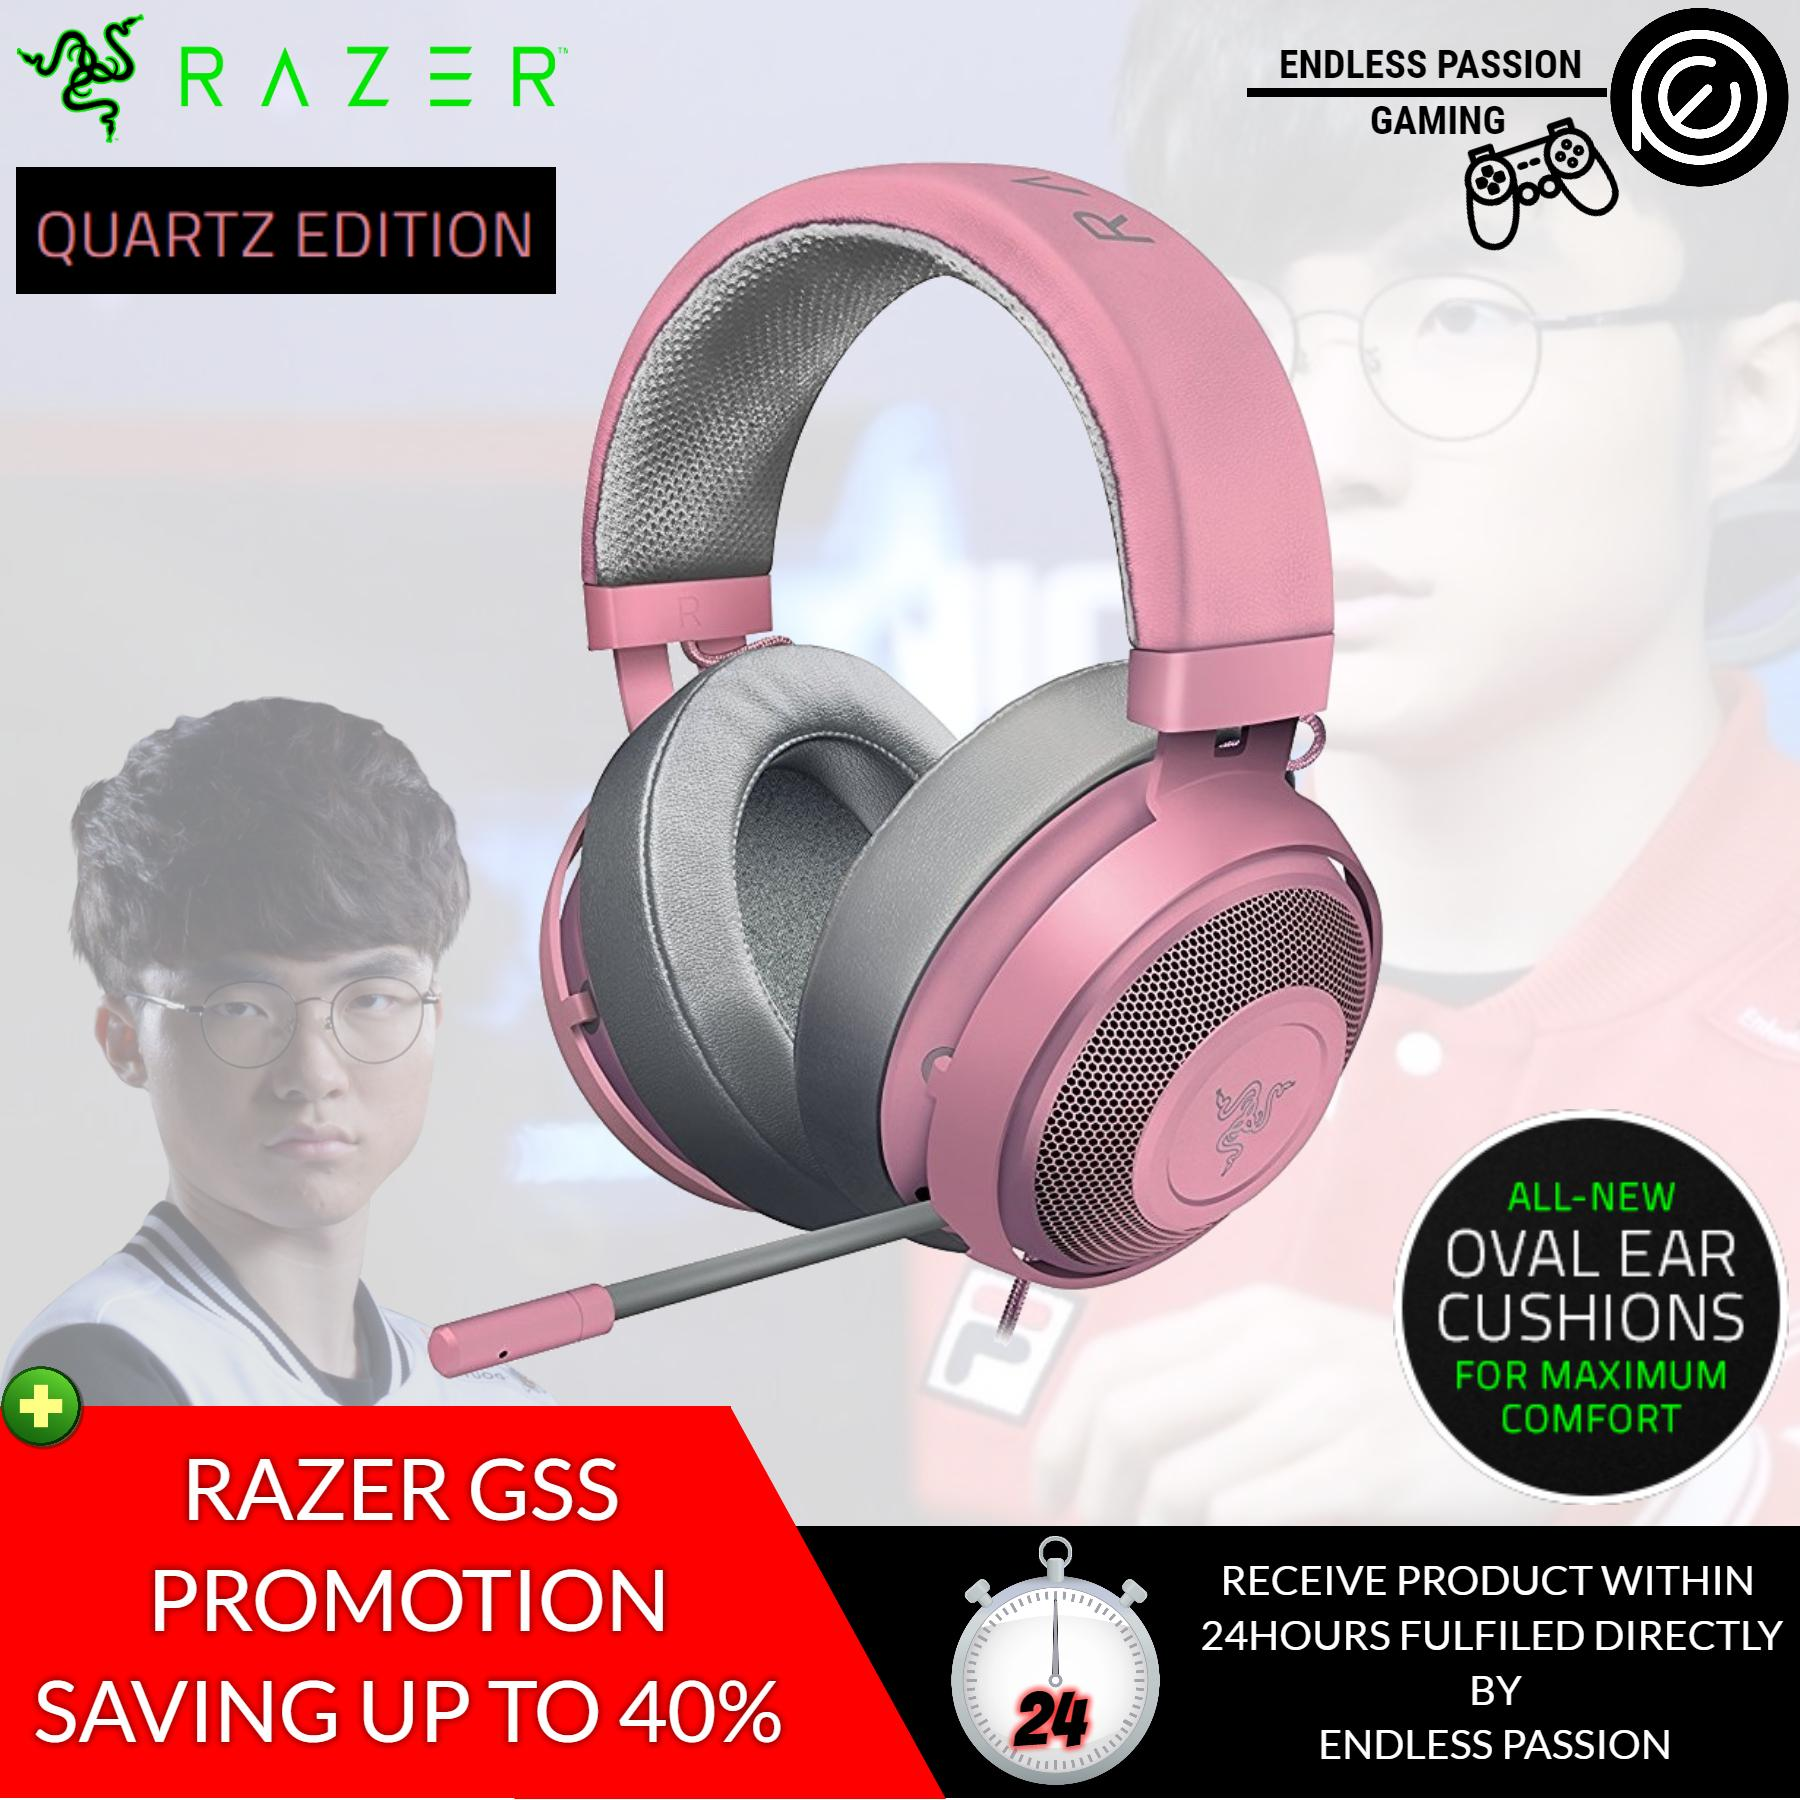 Razer Kraken Pro V2 Quartz Edition Gaming Headset - Oval